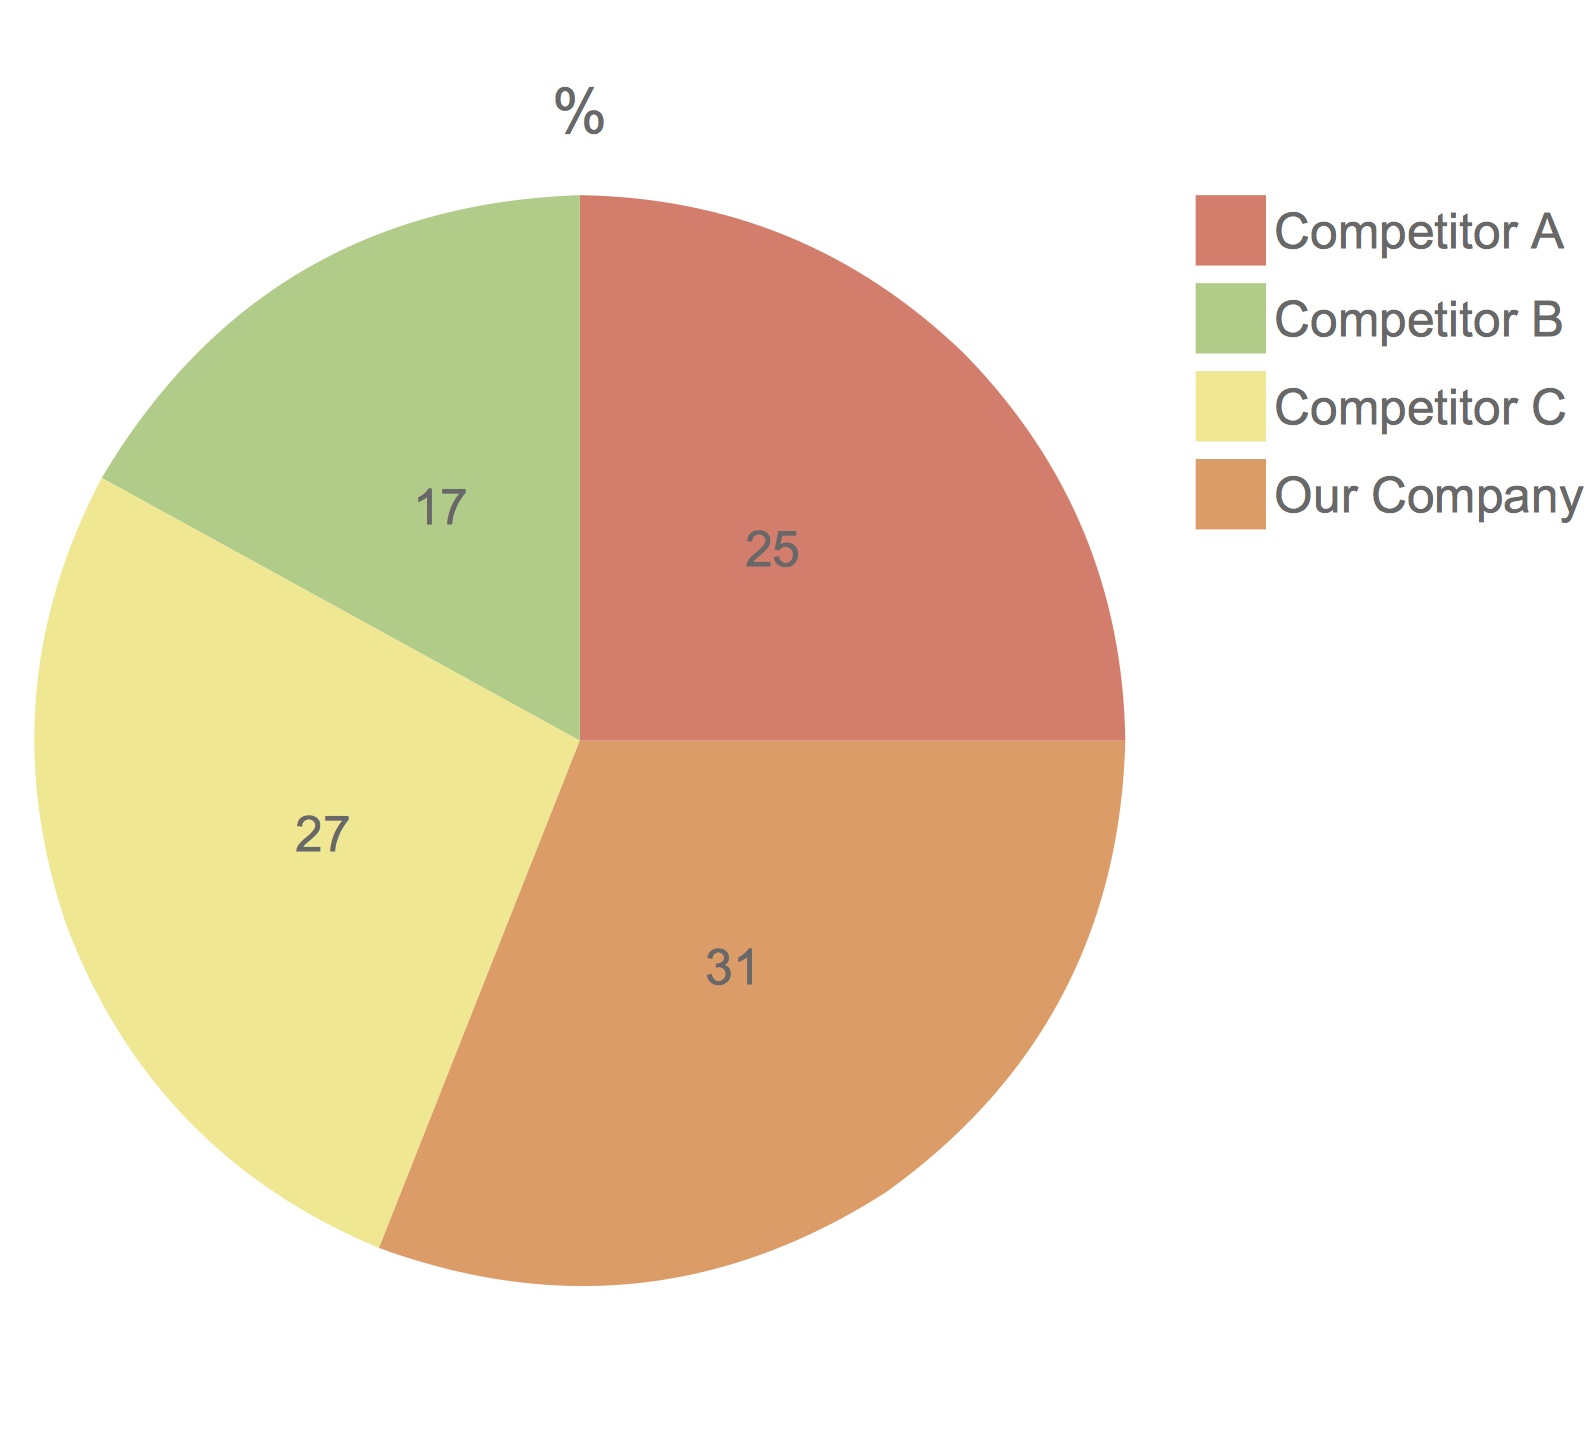 Competitor Analysis. Pie Chart